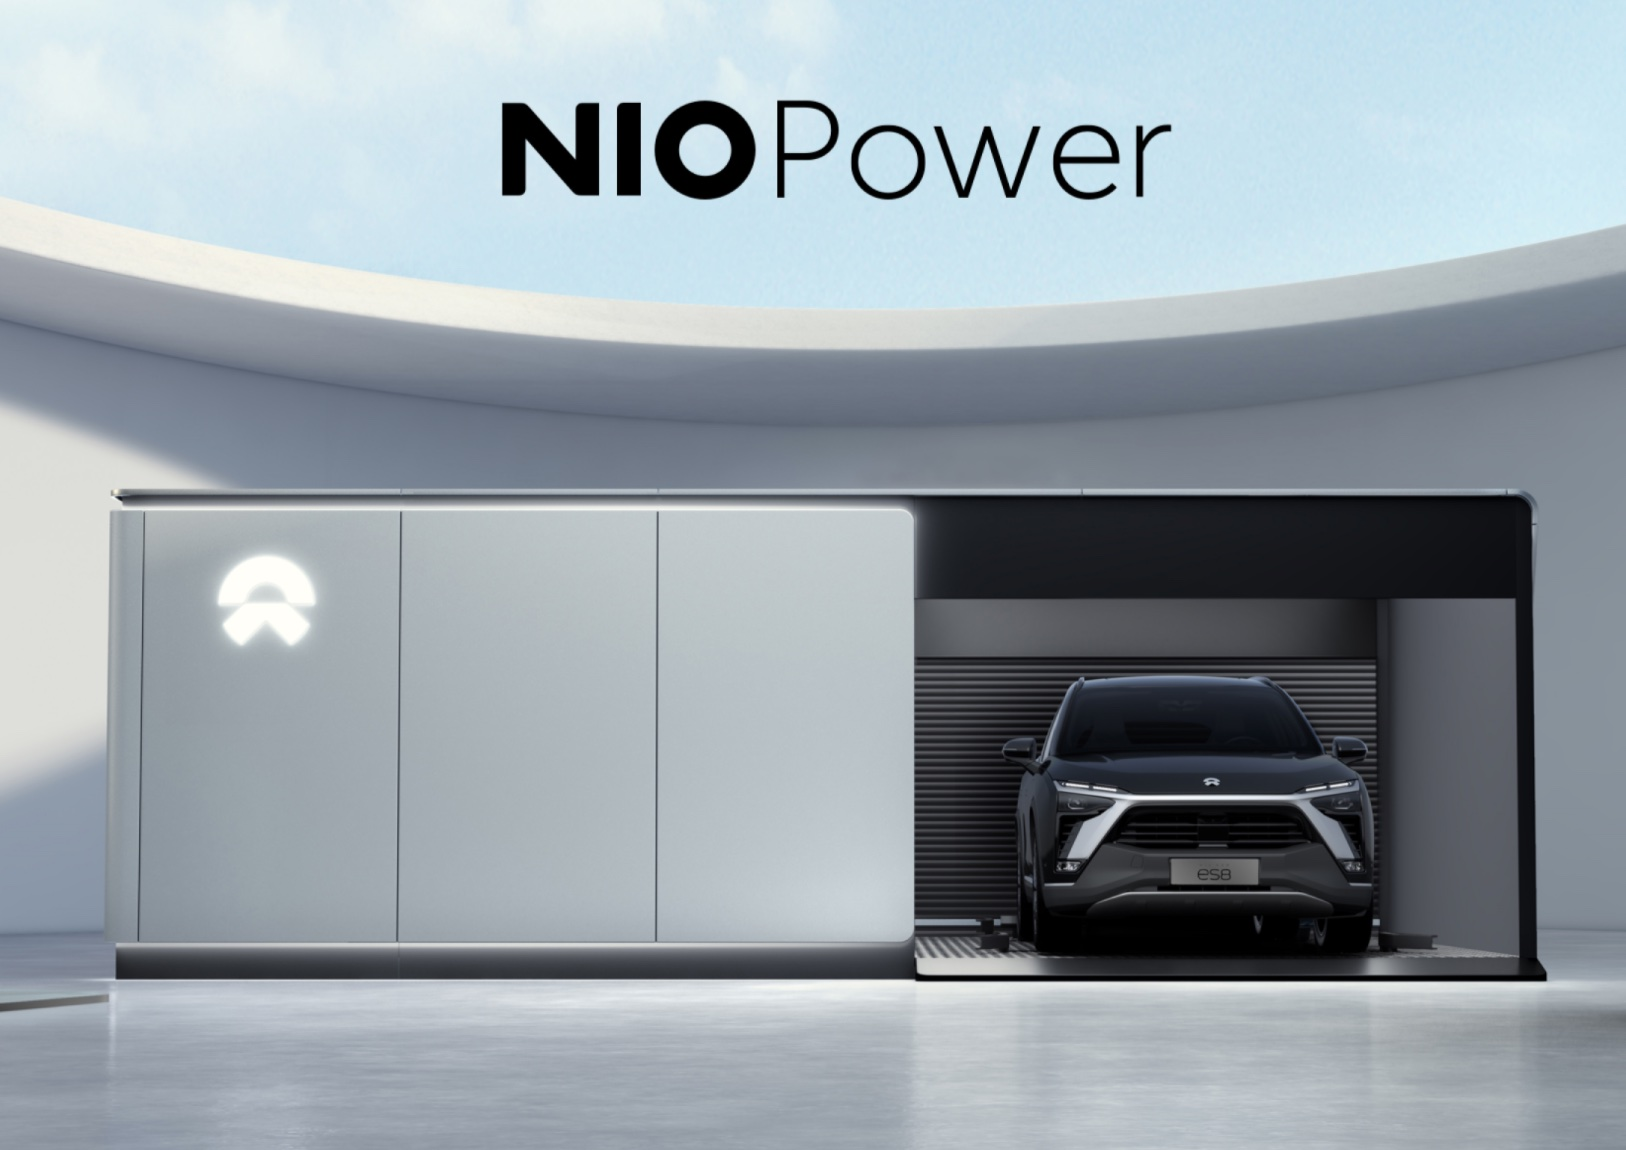 State media praises NIO-led battery swap model in two articles on same day-CnTechPost